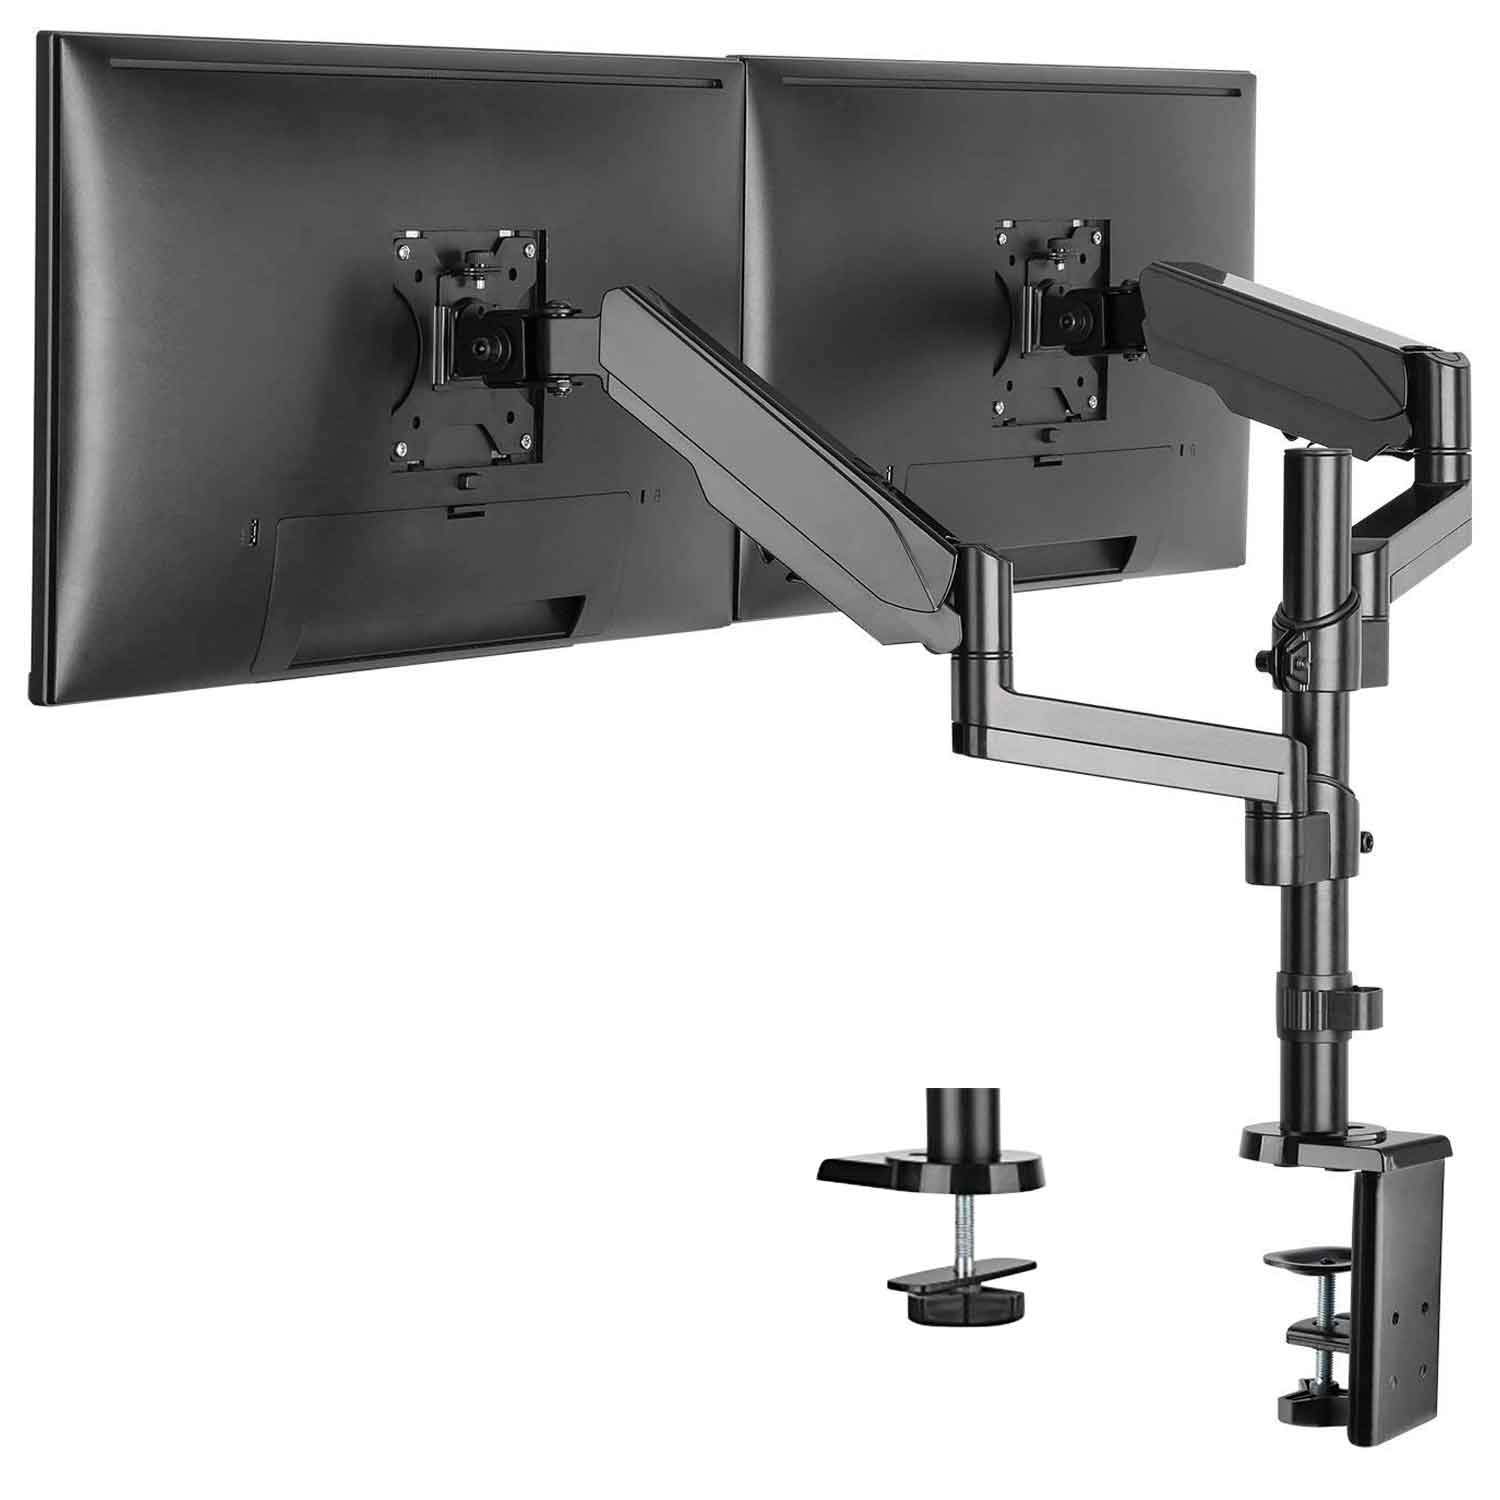 WALI Premium Dual LCD Monitor Desk Mount Fully Adjustable Gas Spring Stand for Display up to 32 inch, 17.6 lbs Capacity (GSDM002), Black